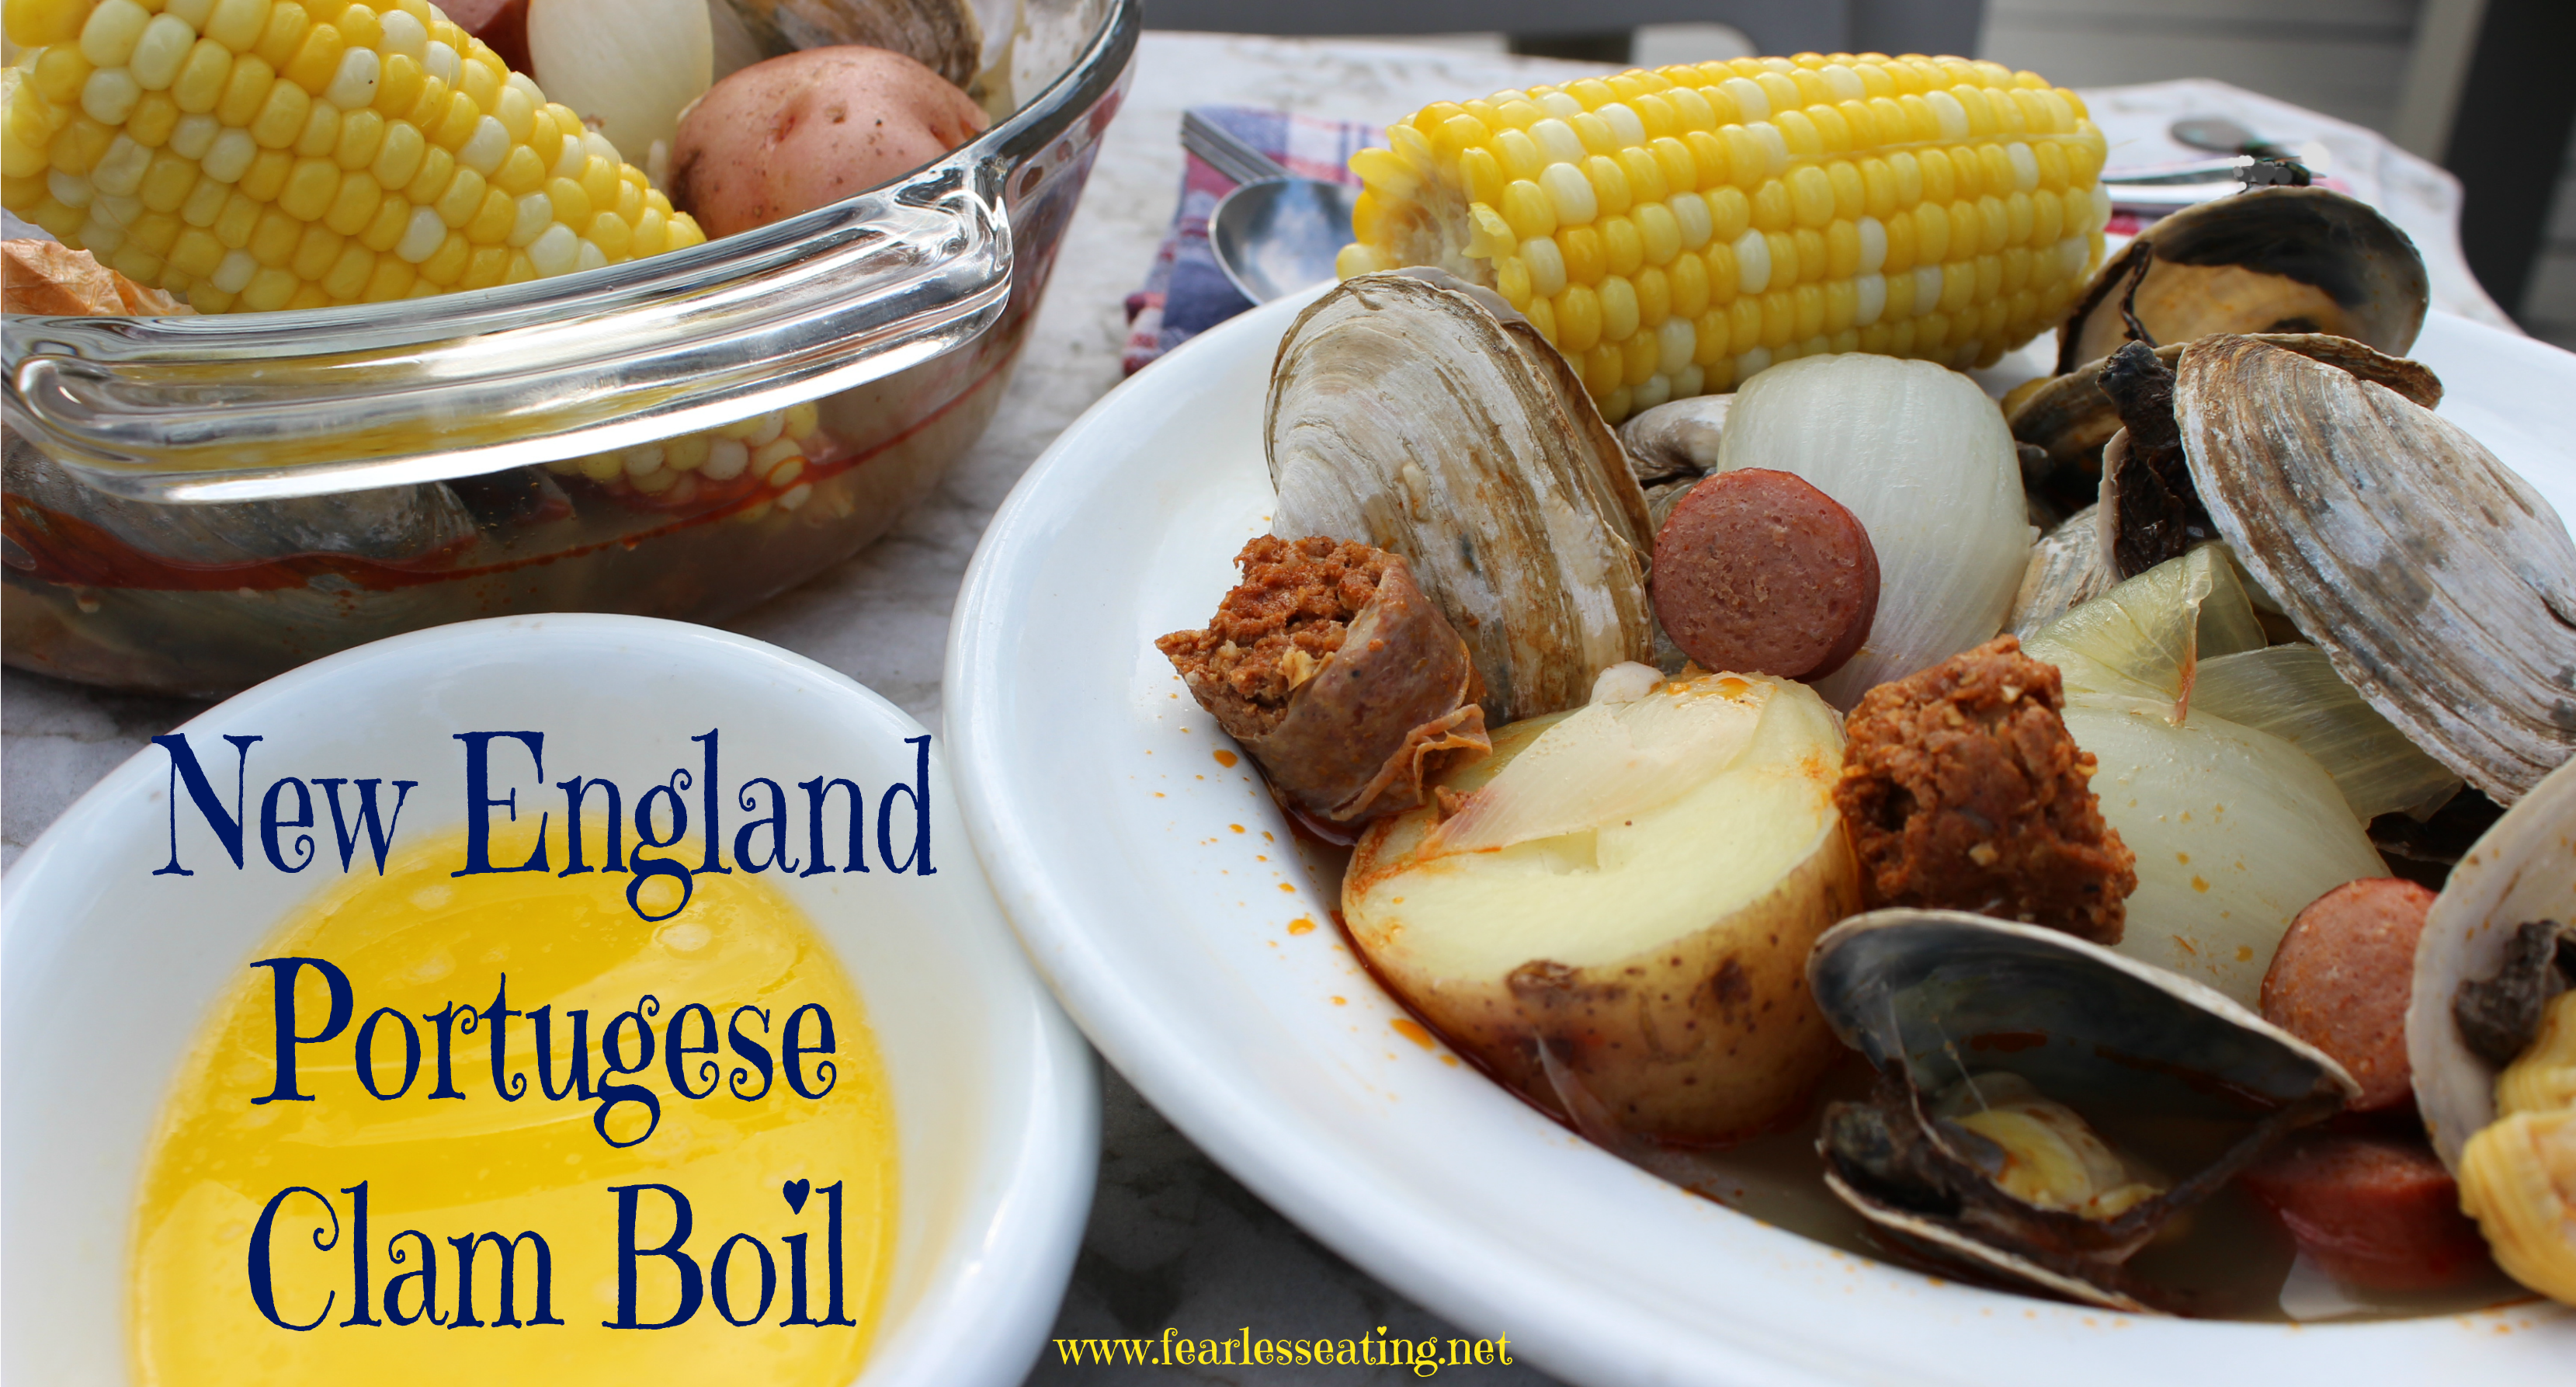 New England Portugese Clam Boil